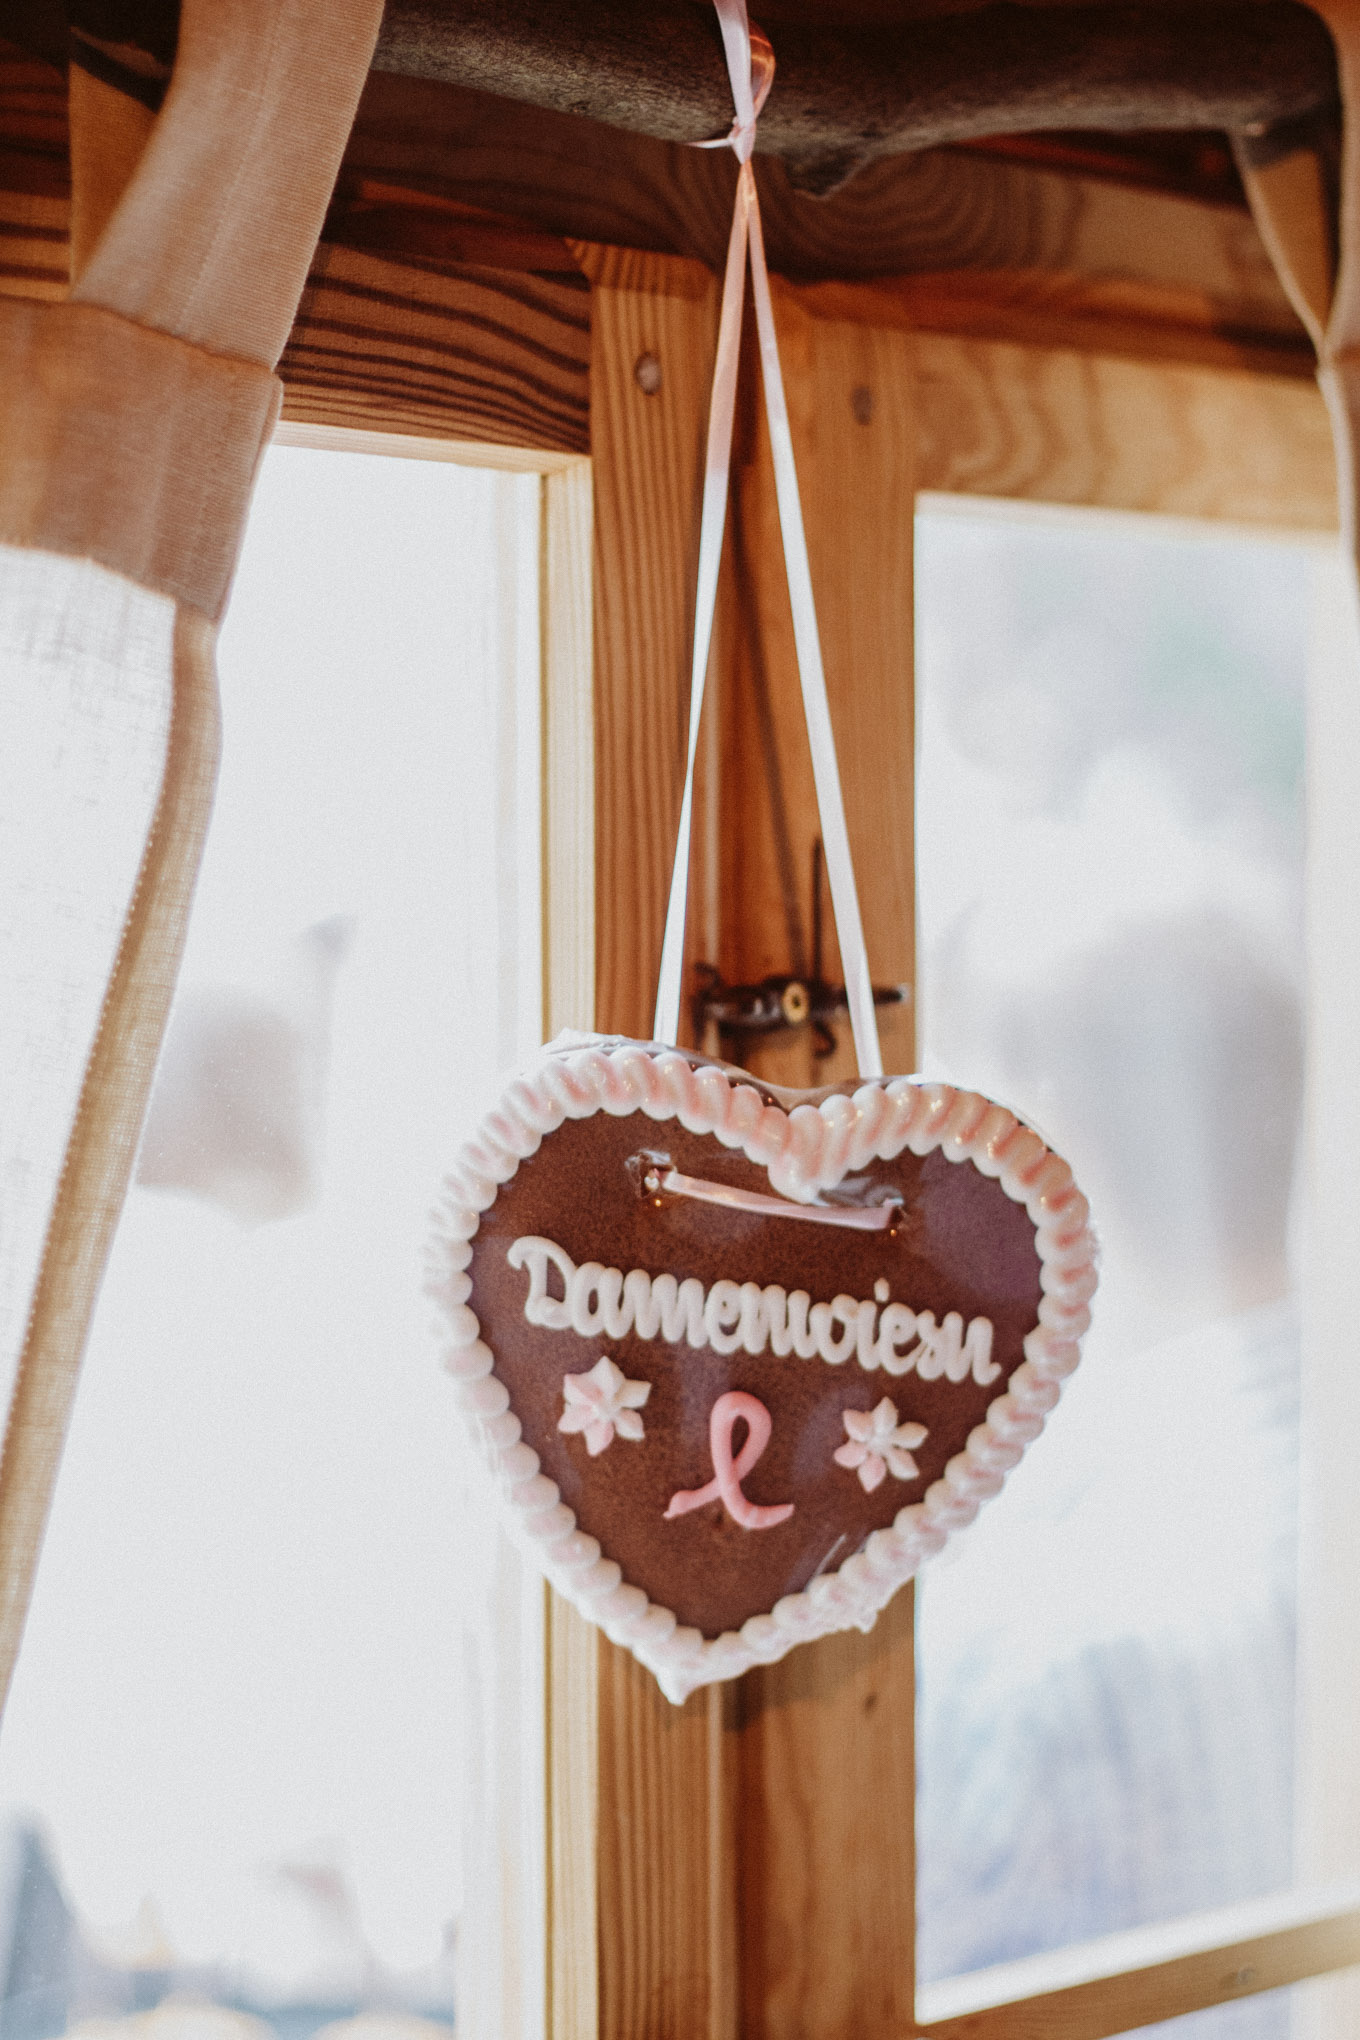 Wiener Damenwiesn | The Daily Dose